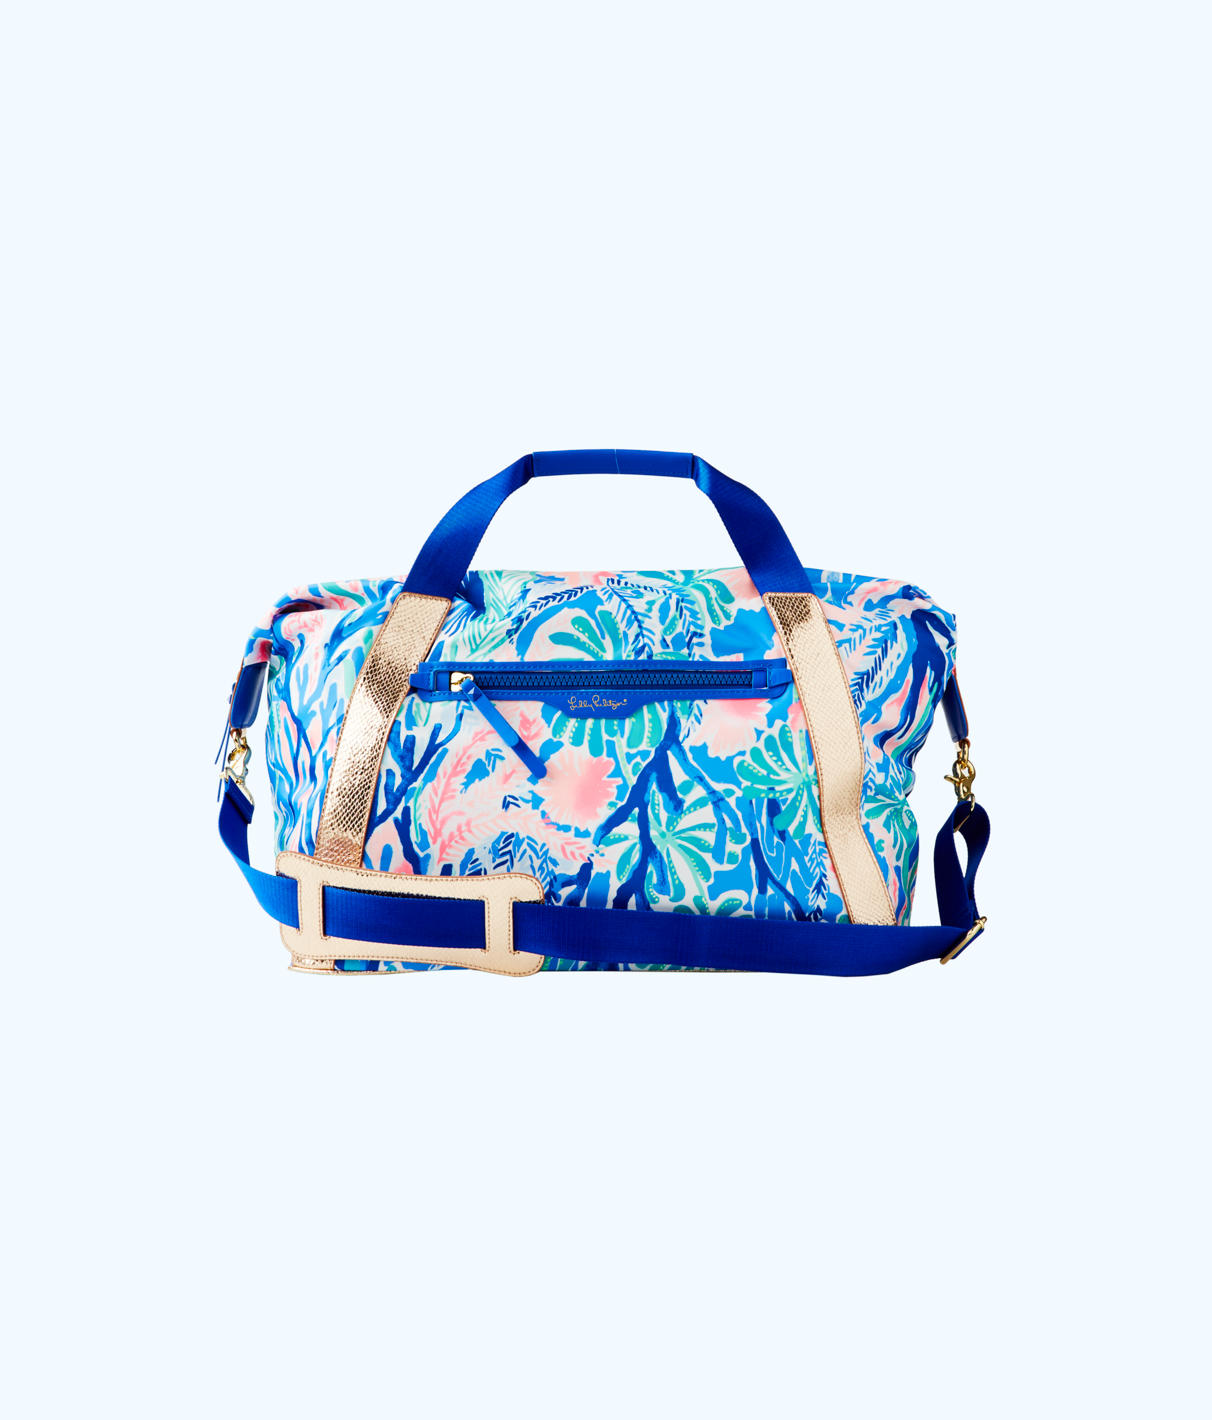 9320b1ab6f Lilly Pulitzer Lilly Pulitzer Sunseekers Travel Tote Bag